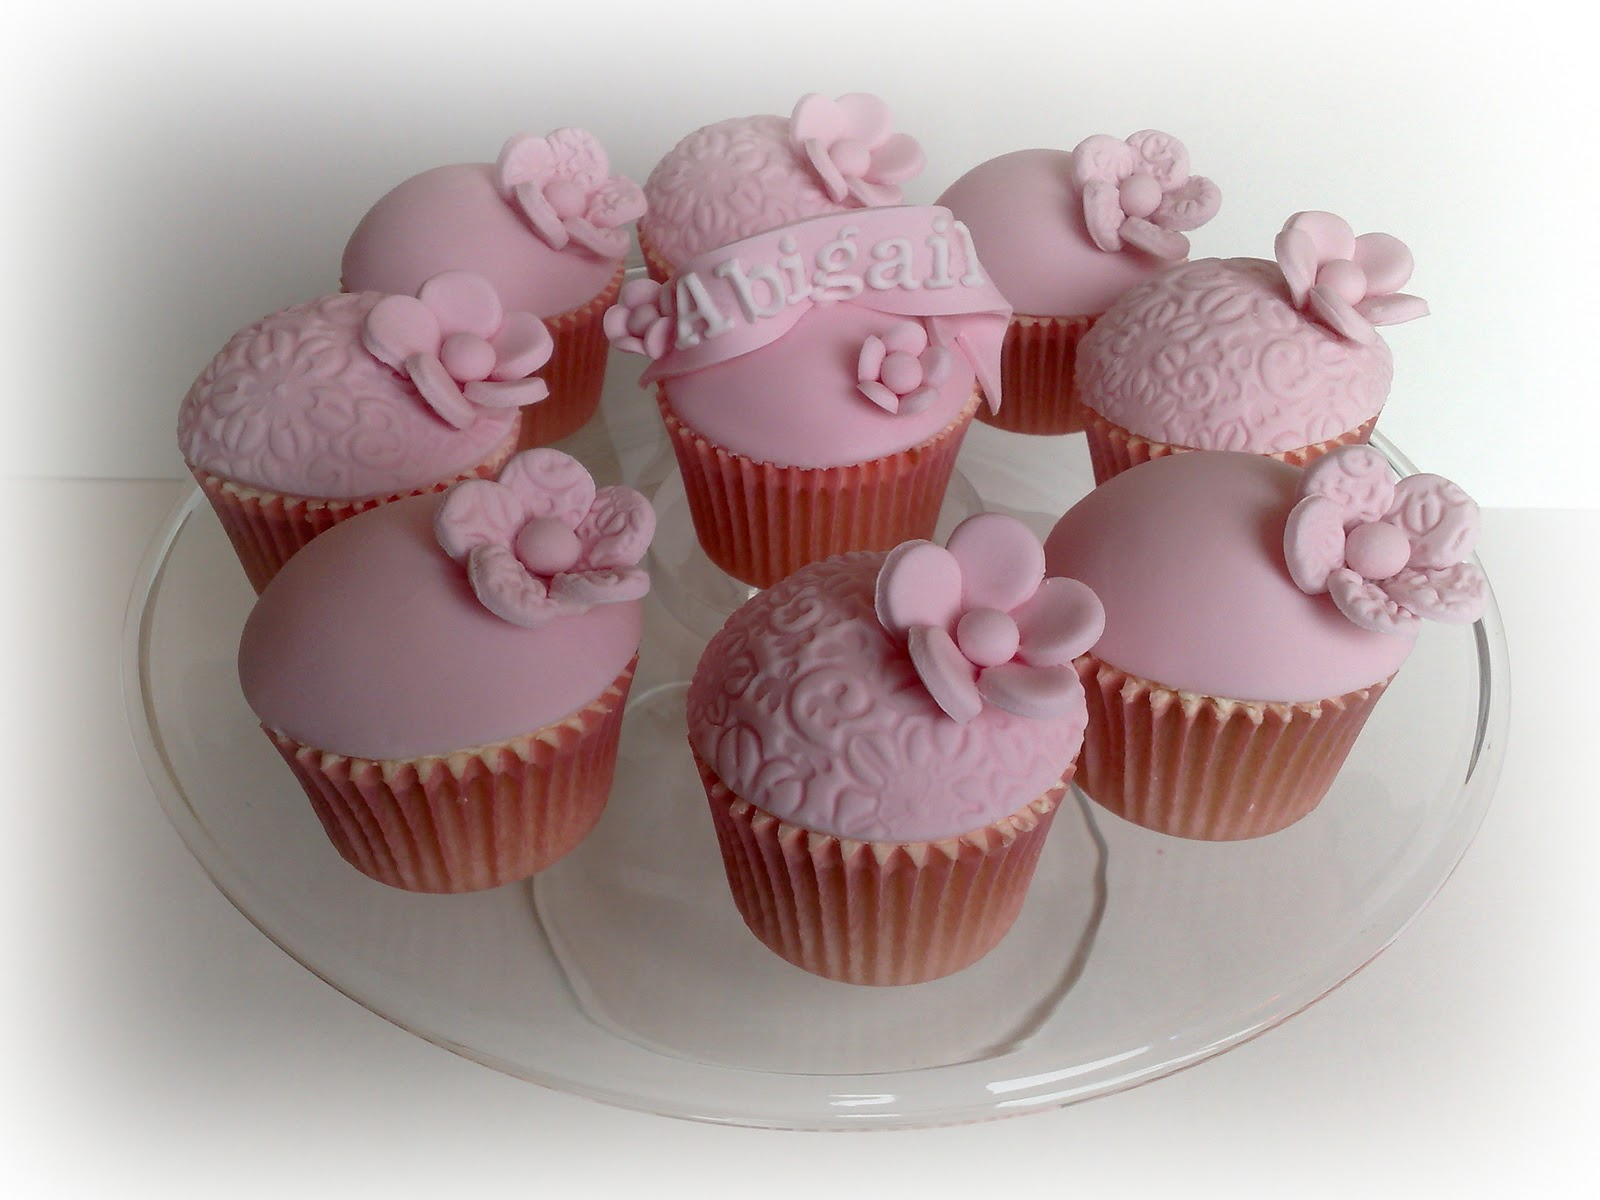 Cupcake Christening Design : Small Things Iced: Christening Cupcakes